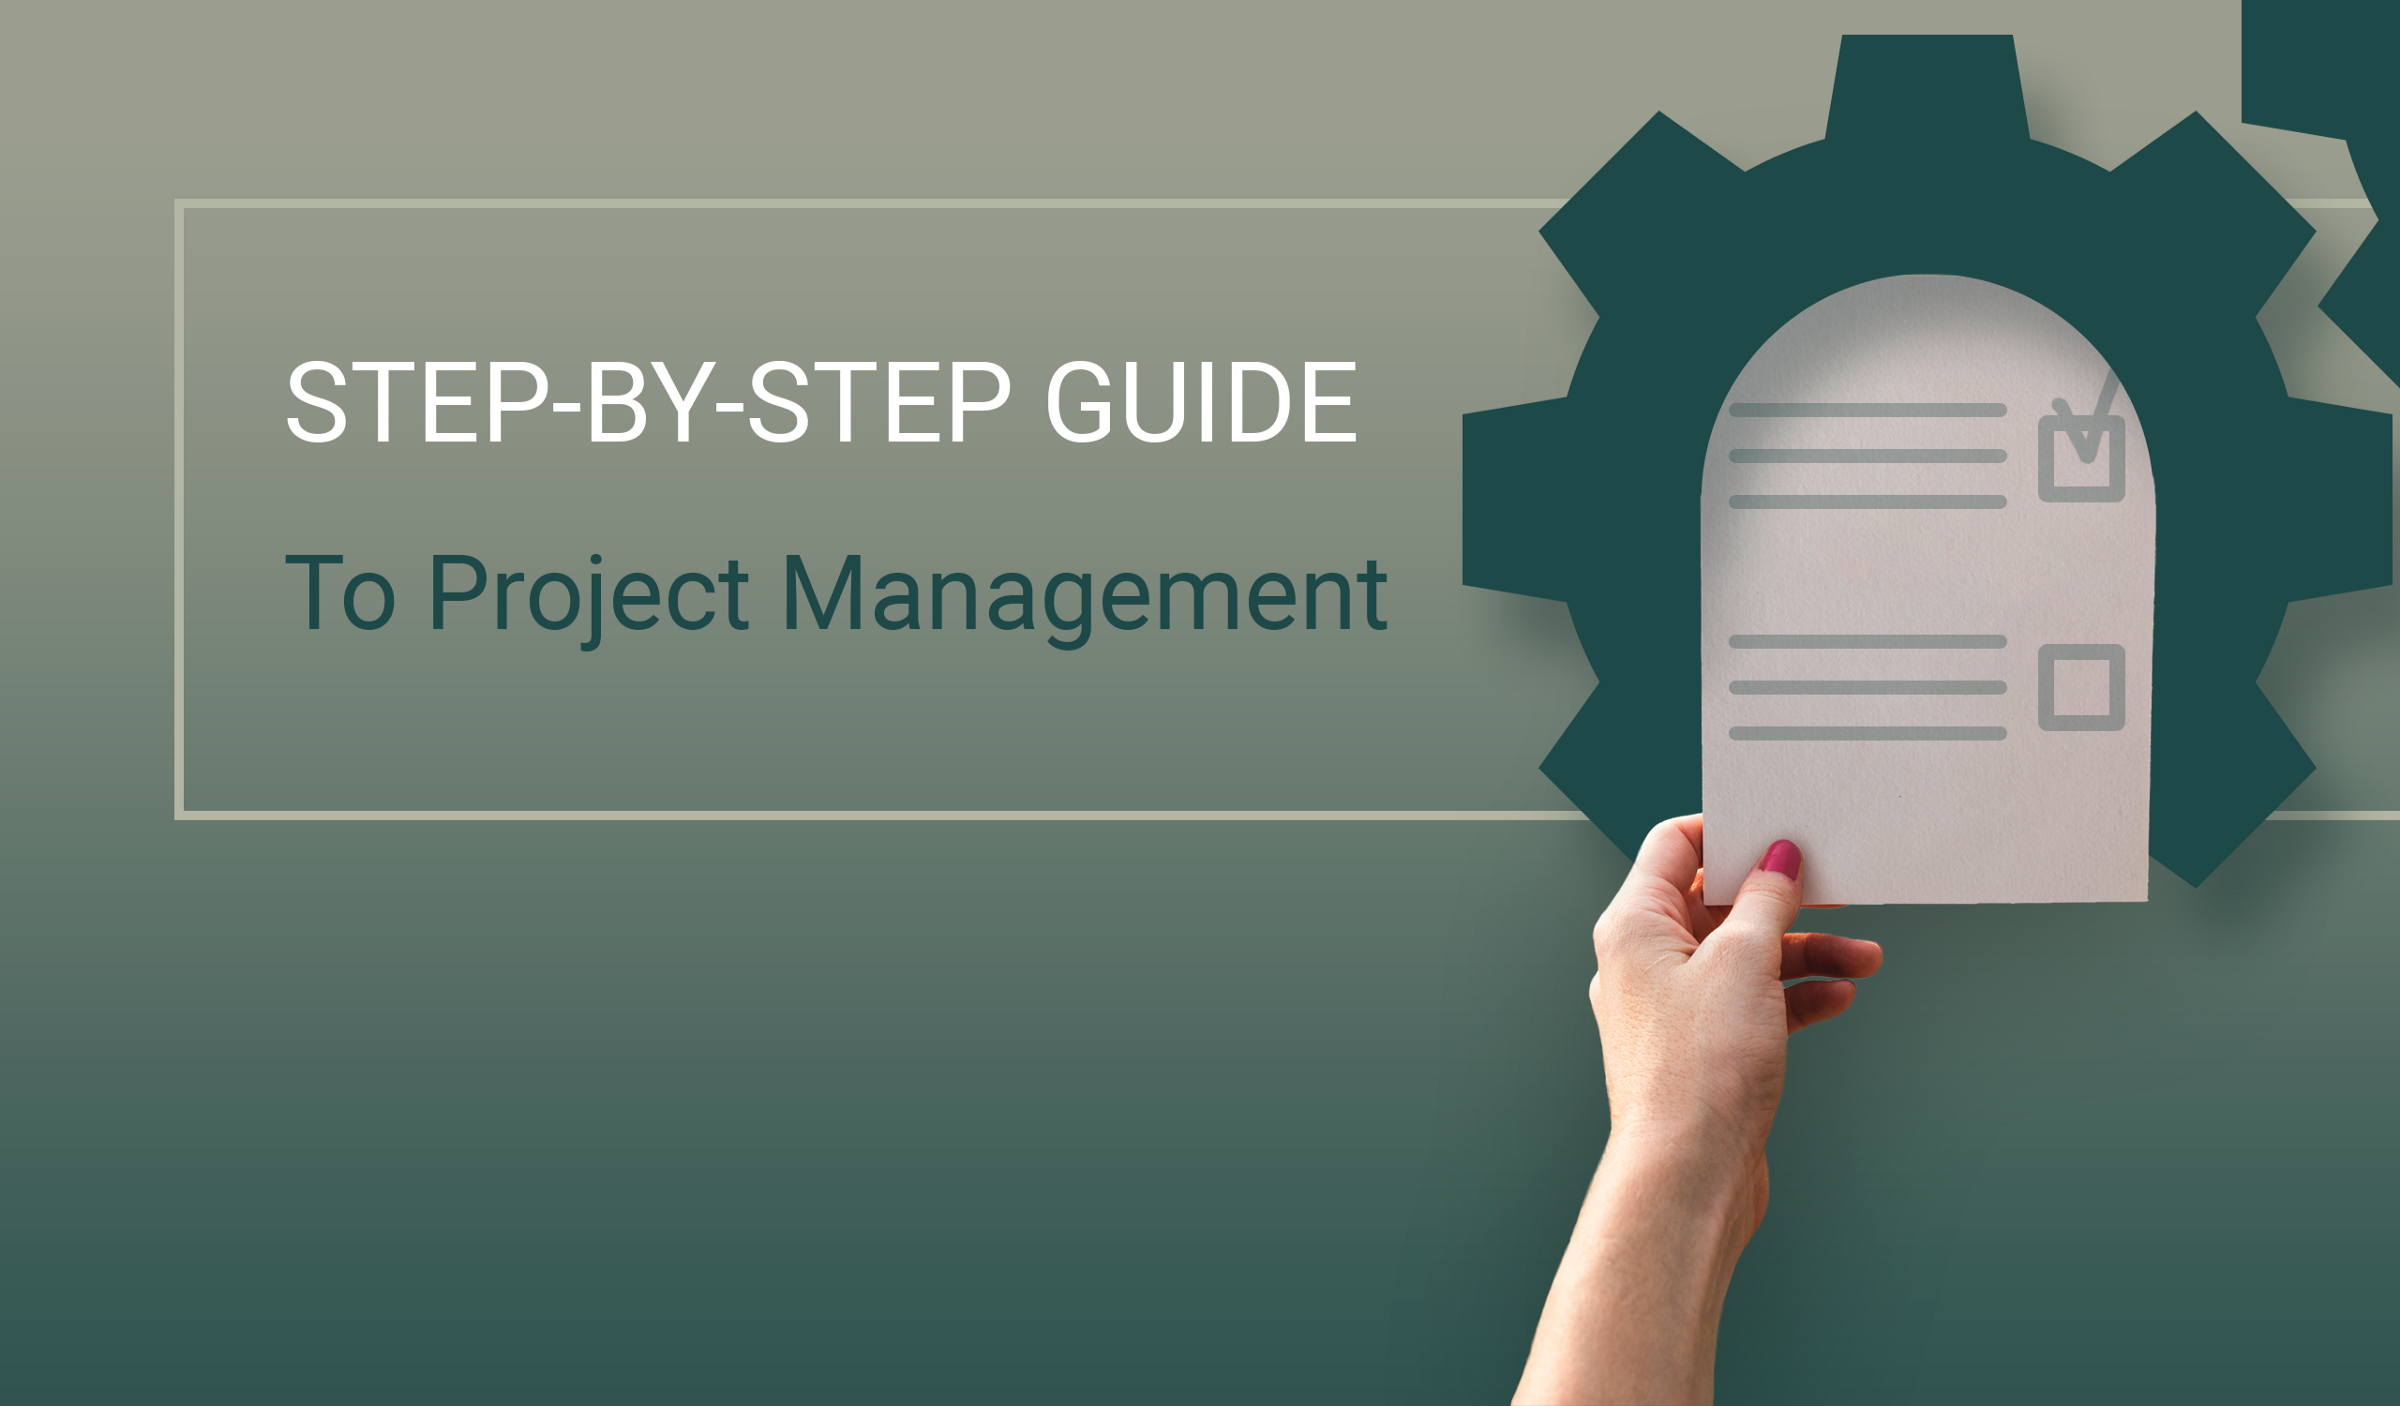 /how-to-manage-your-project-step-by-step-9057d57d99f5 feature image